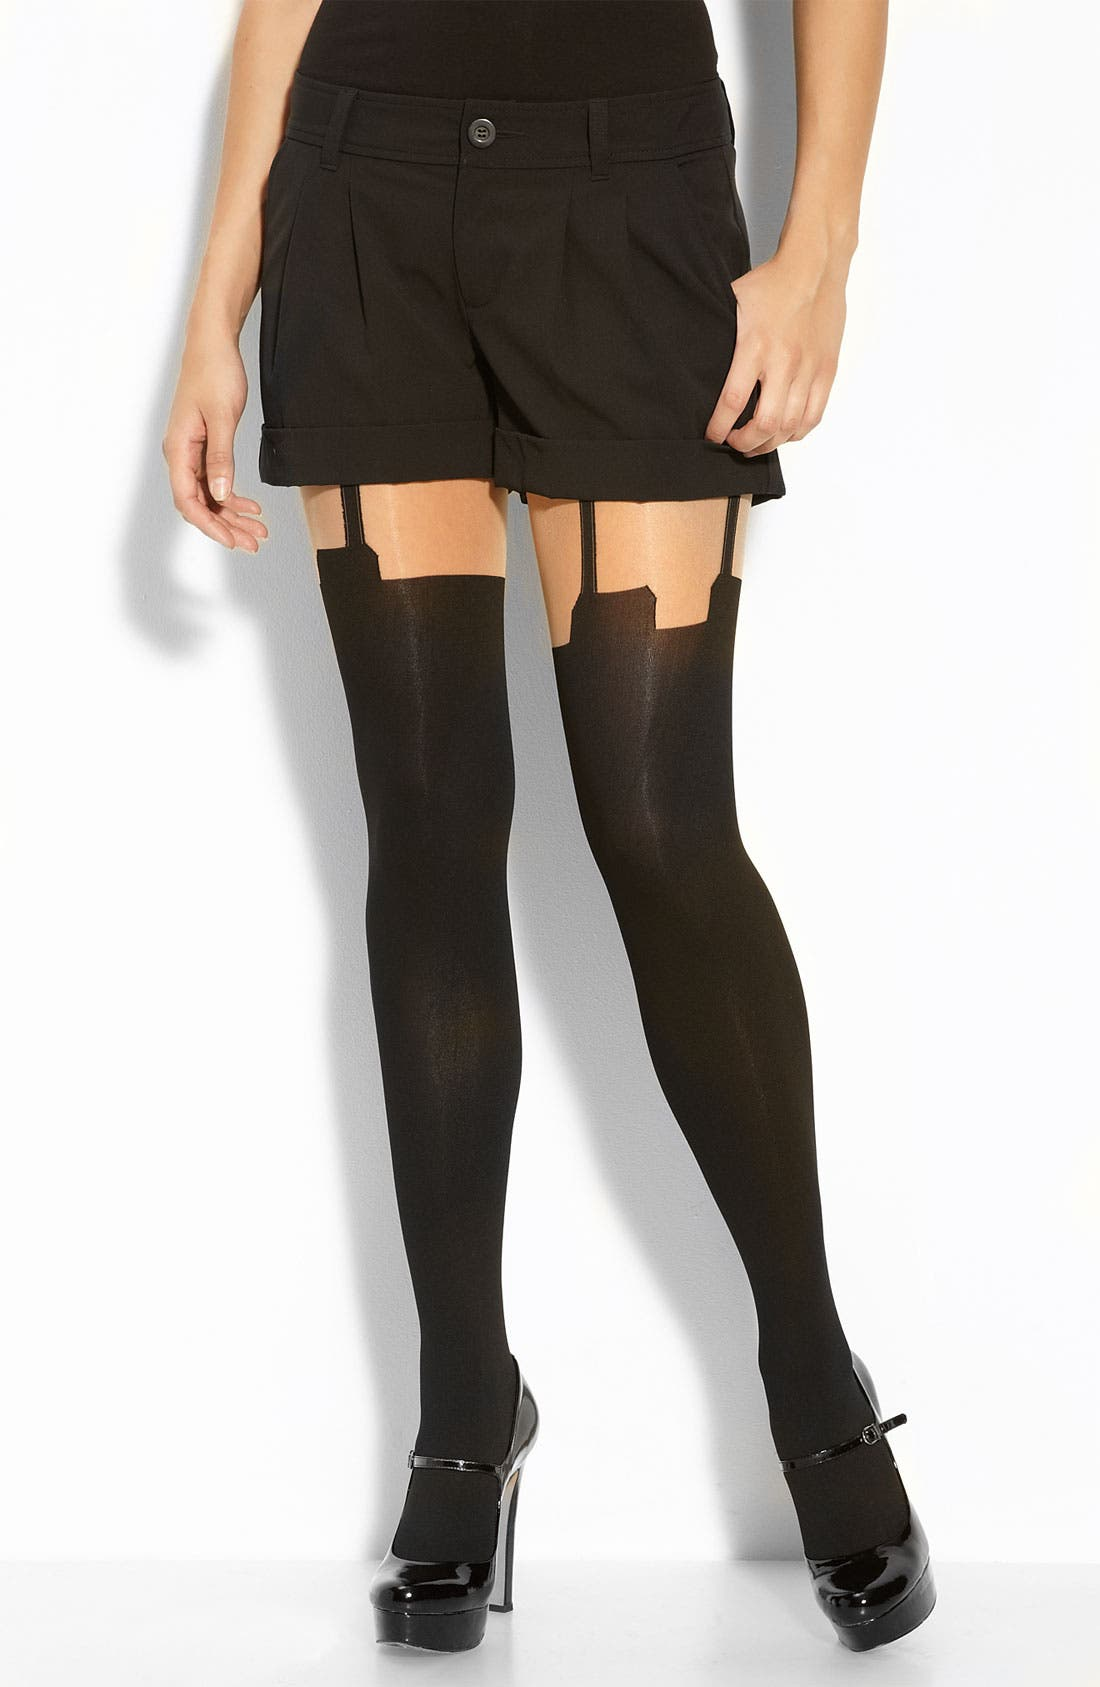 Alternate Image 1 Selected - Pretty Polly 'House of Holland Super Suspender' Tights